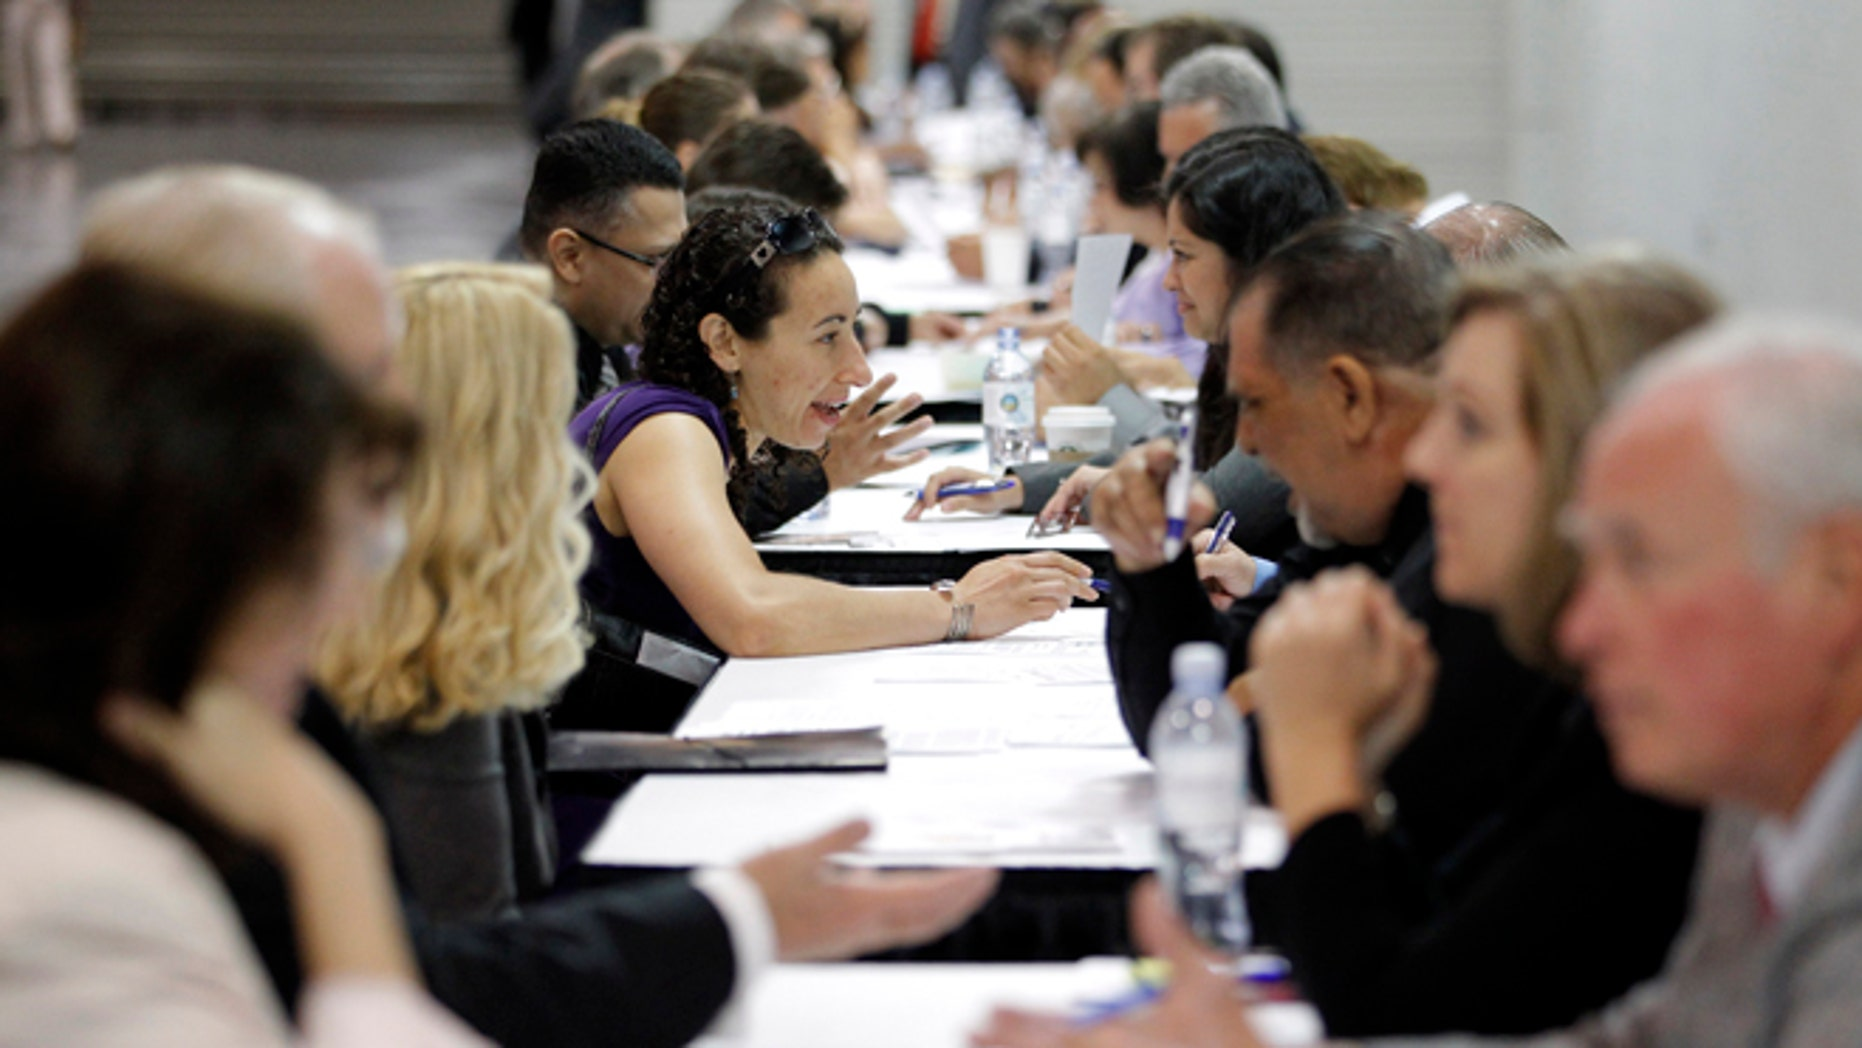 June 13, 2012: Job seekers have their resumes reviewed at a job fair expo in Anaheim, Calif.